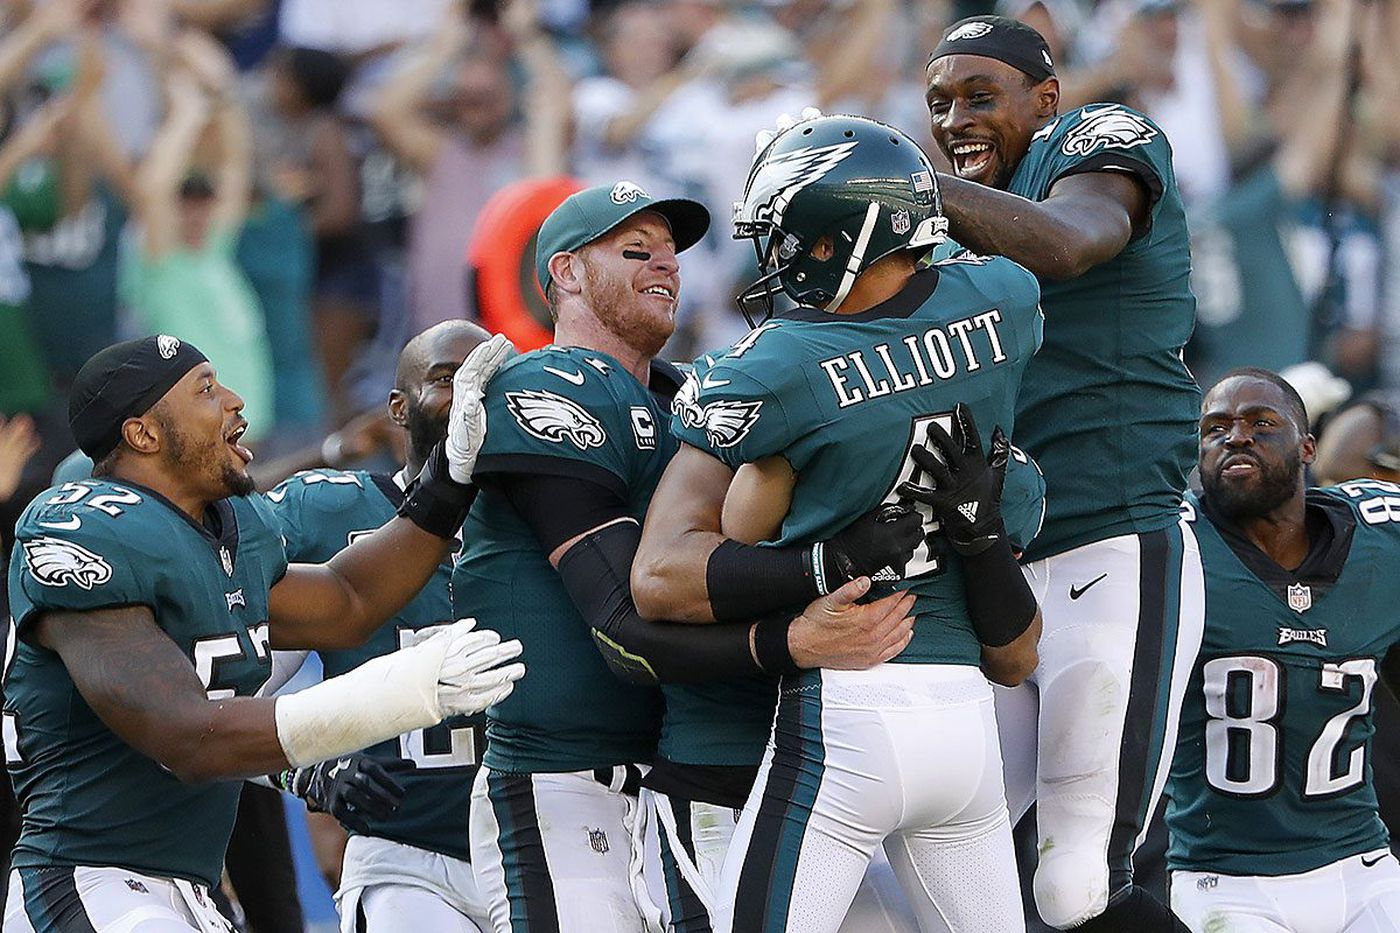 Carson Wentz before Jake Elliott's field goal: 'I'll give him my game check if he makes it'